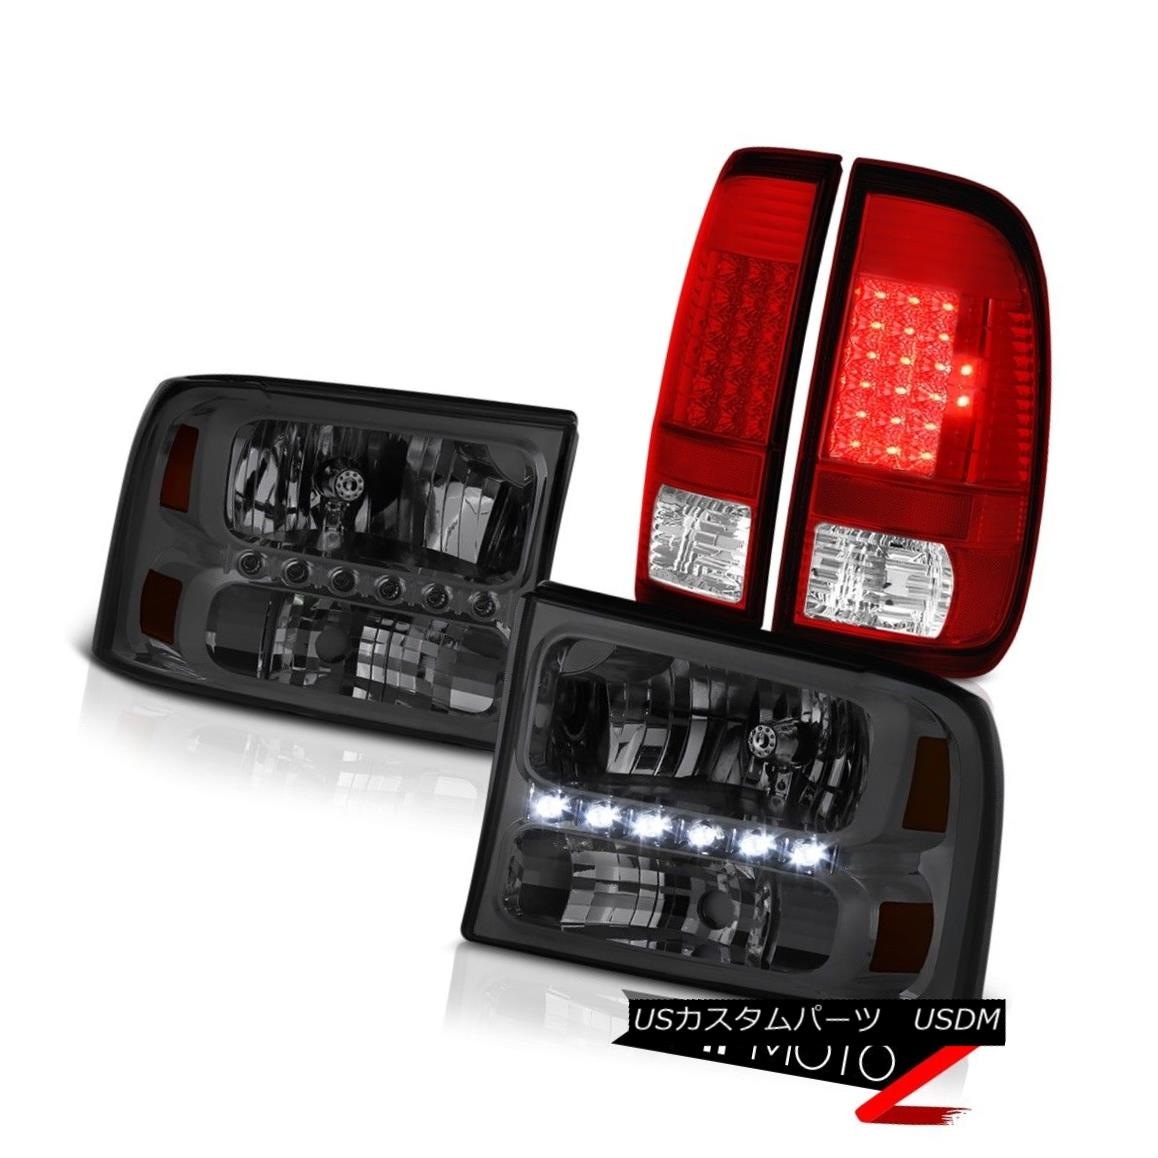 テールライト Smoke Headlights LEFT RIGHT Bright L.E.D Taillamps 1999-2004 F350 Turbo Diesel スモークヘッドライトLEFT RIGHT Bright L.E.D Taillamps 1999-2004 F350 Turbo Diesel